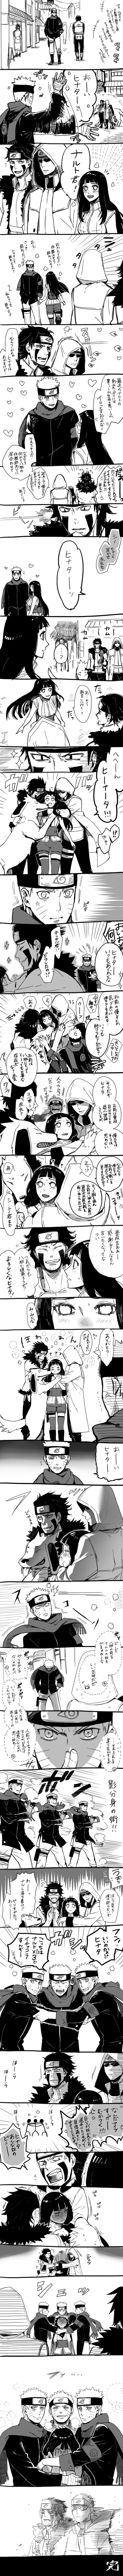 NARUTO/#1803391 - Zerochan honestly have no clue what they are all saying but the last picture just kills me